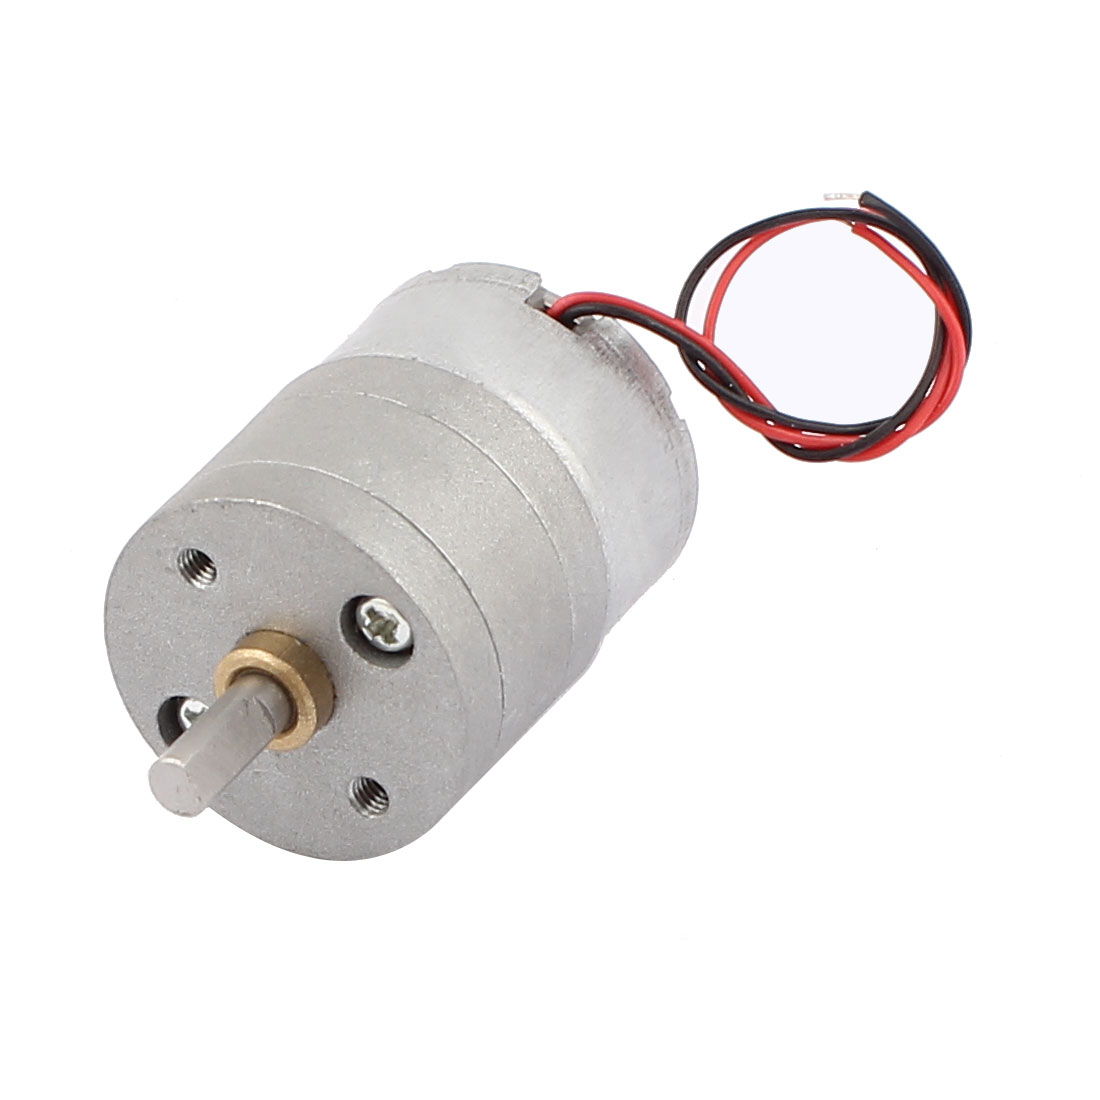 JGA25-300 DC 1.5-9V 60-460RPM Gear Box Electric Speed Reduce Motor